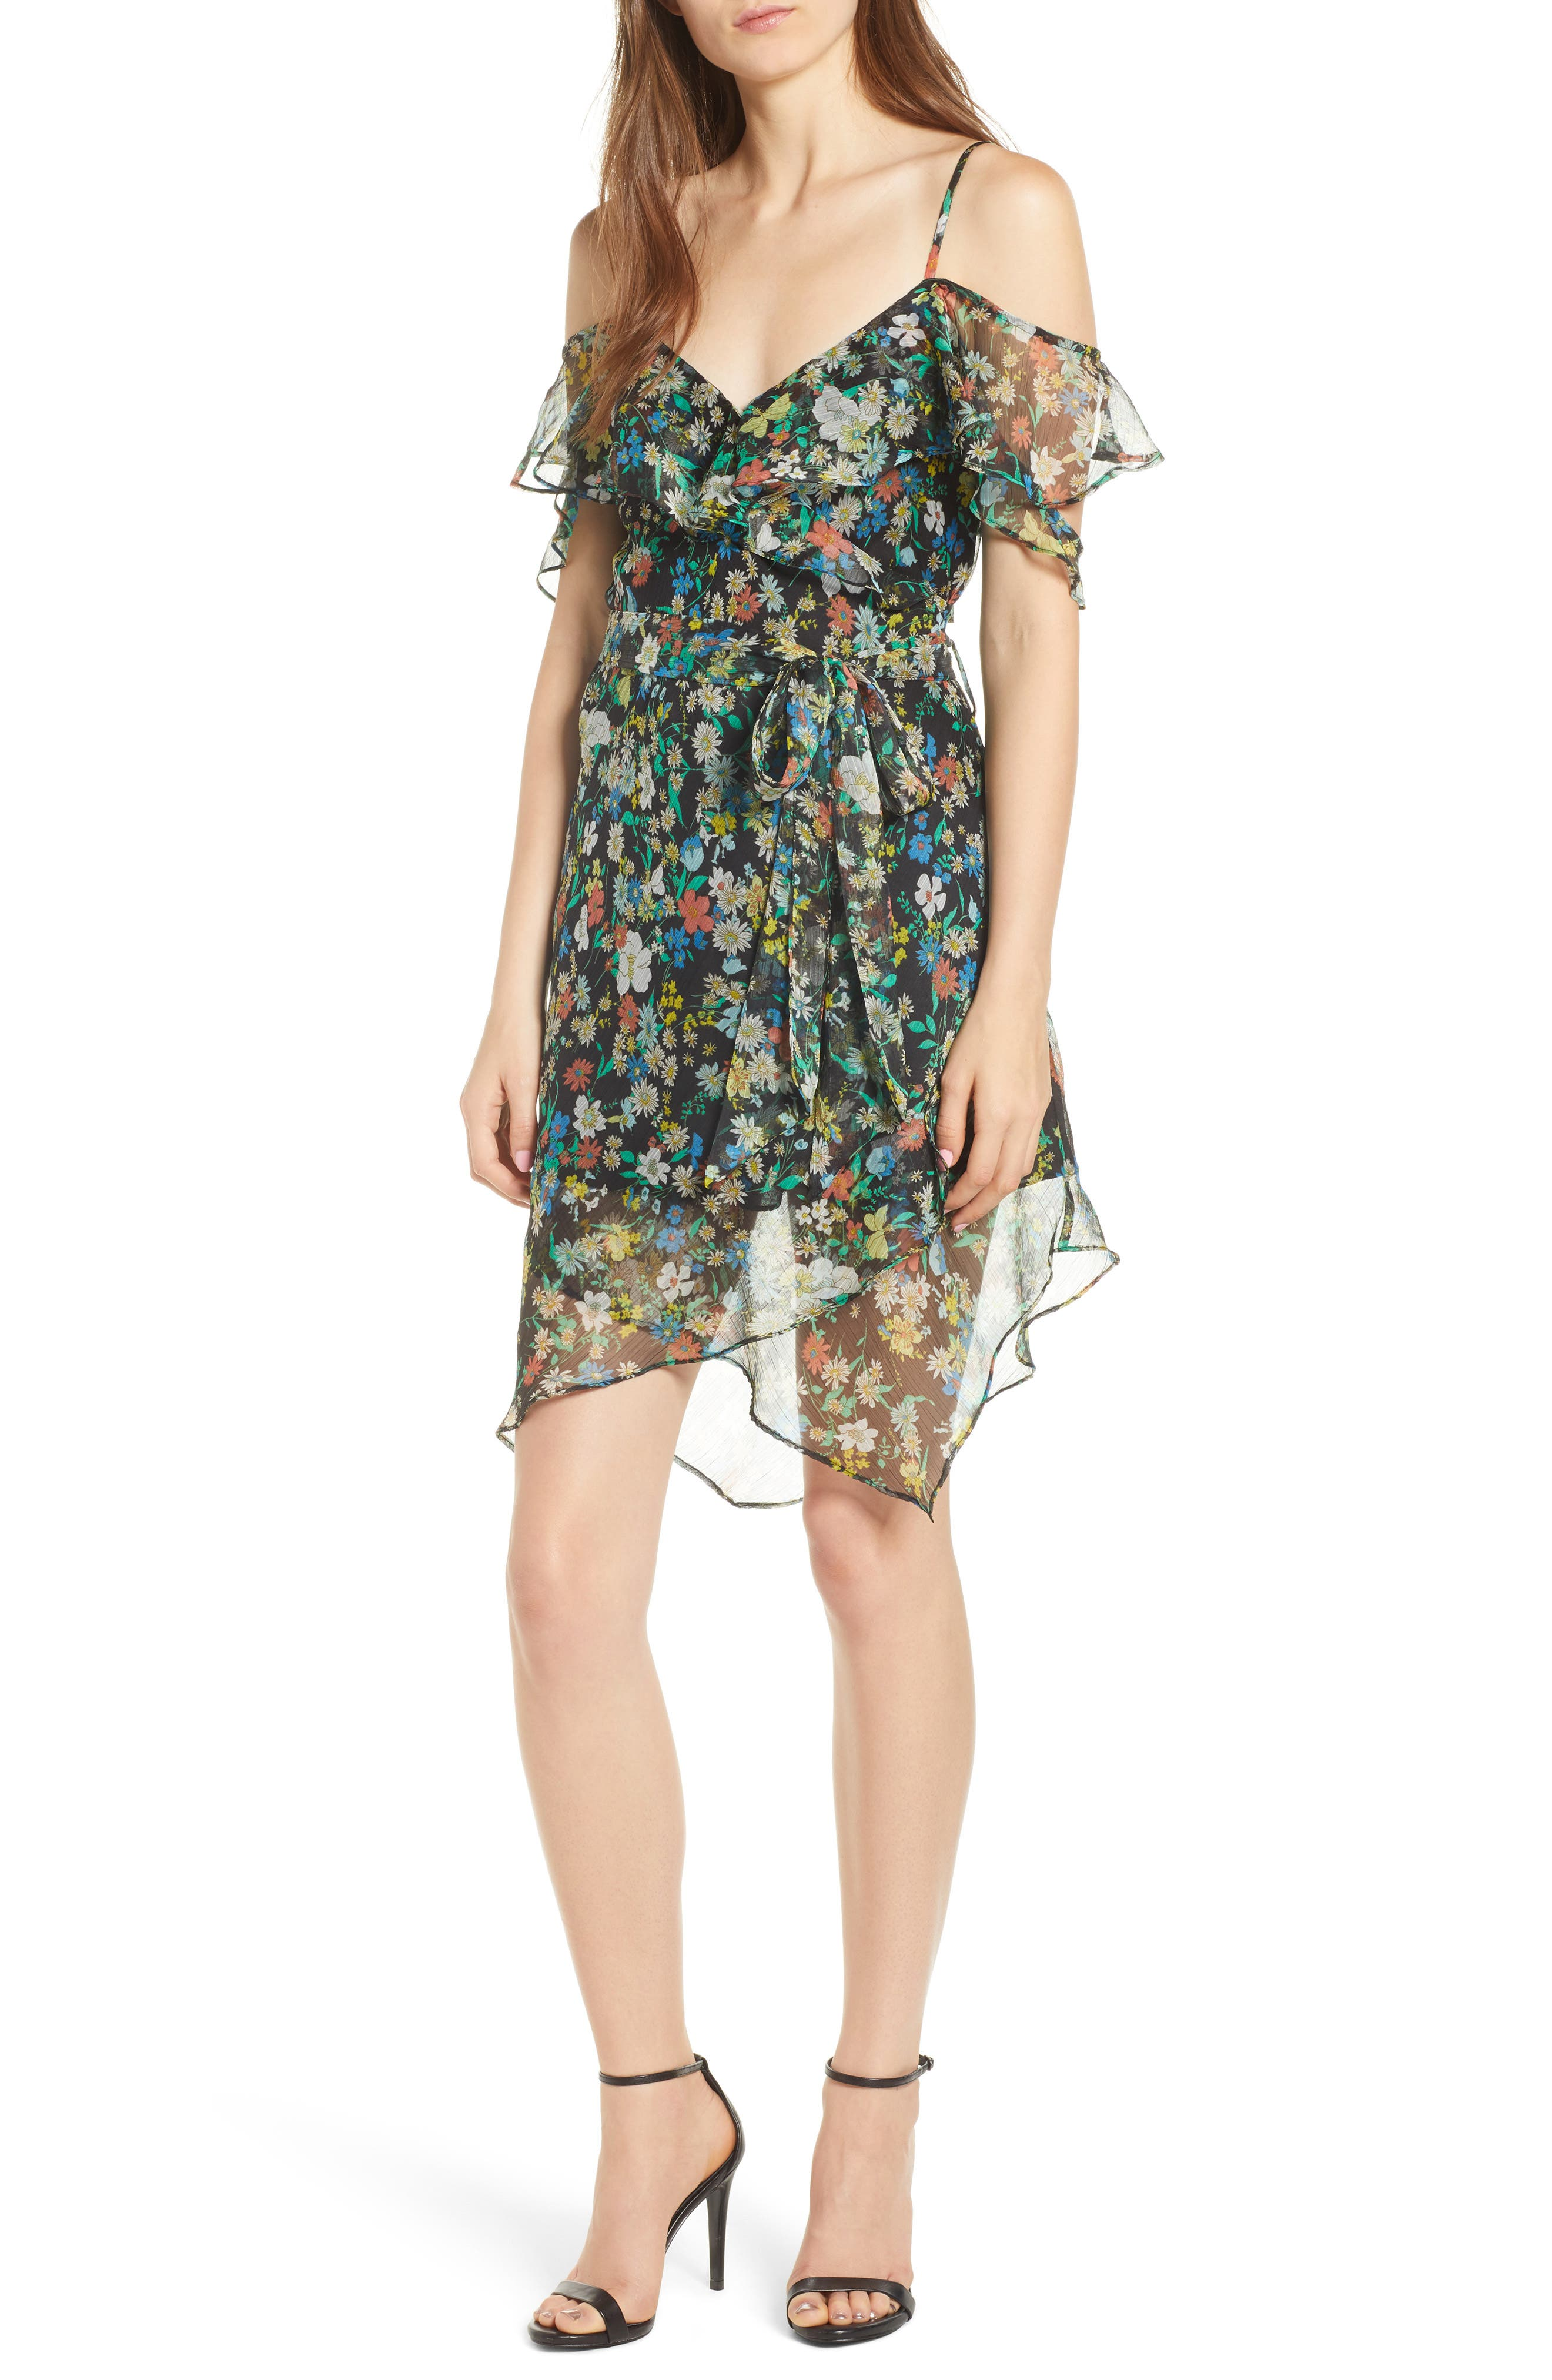 Alternate Image 1 Selected - KENDALL + KYLIE Floral Ruffle Wrap Dress